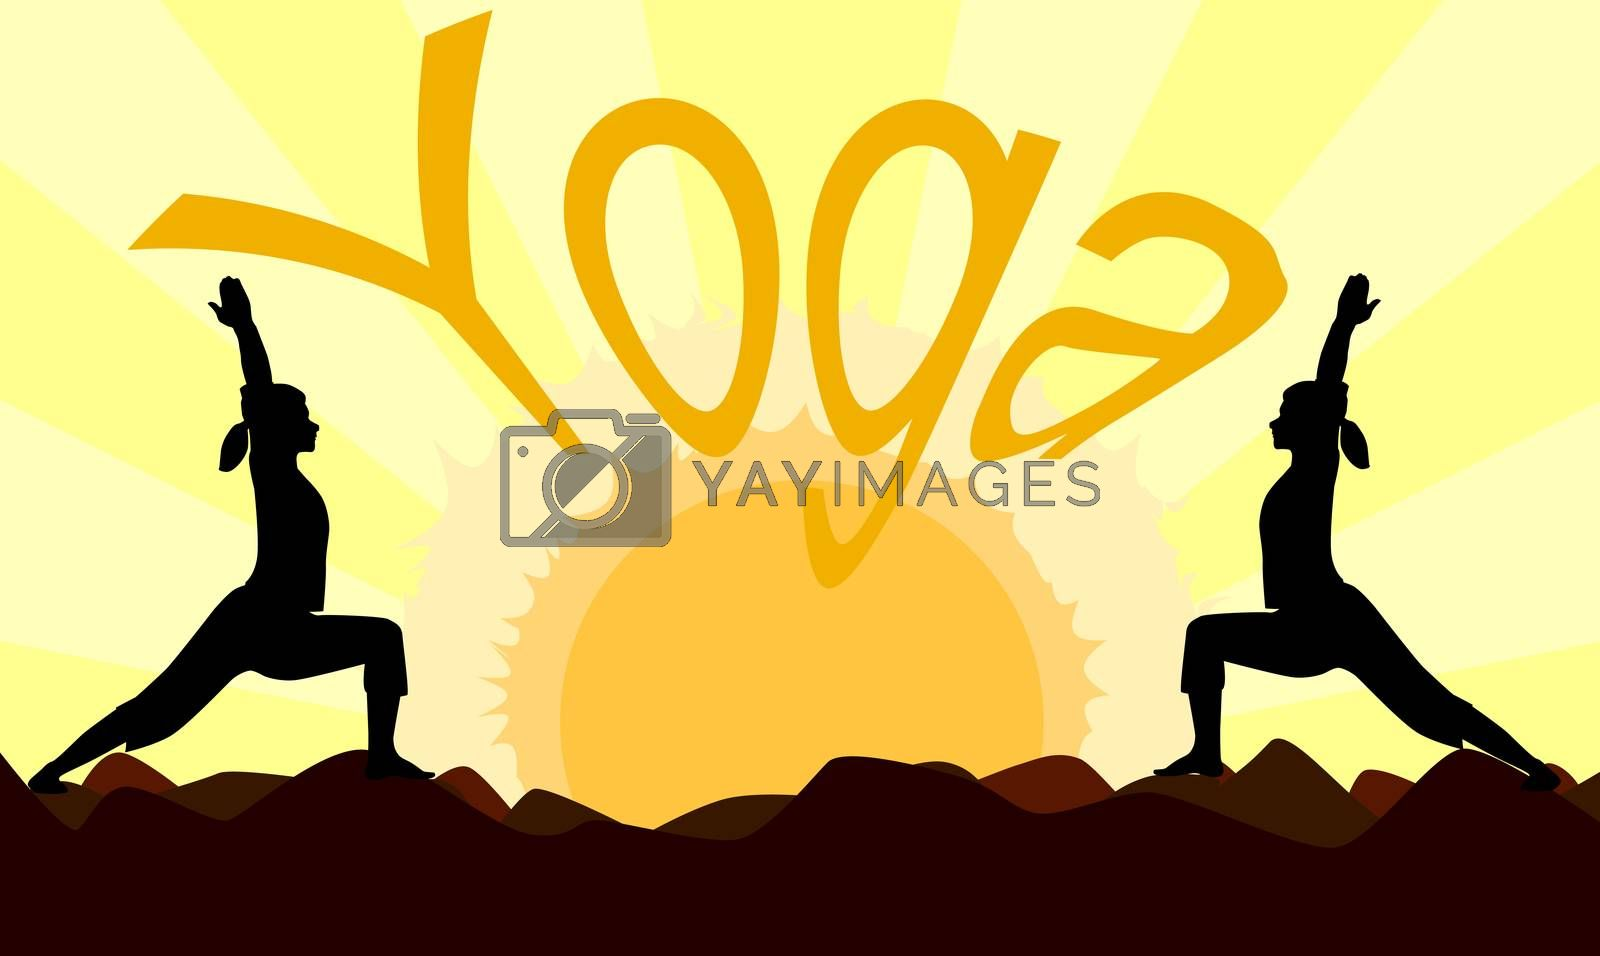 2 yoga poses performed by young women in silhouette set against a yellow sunset.